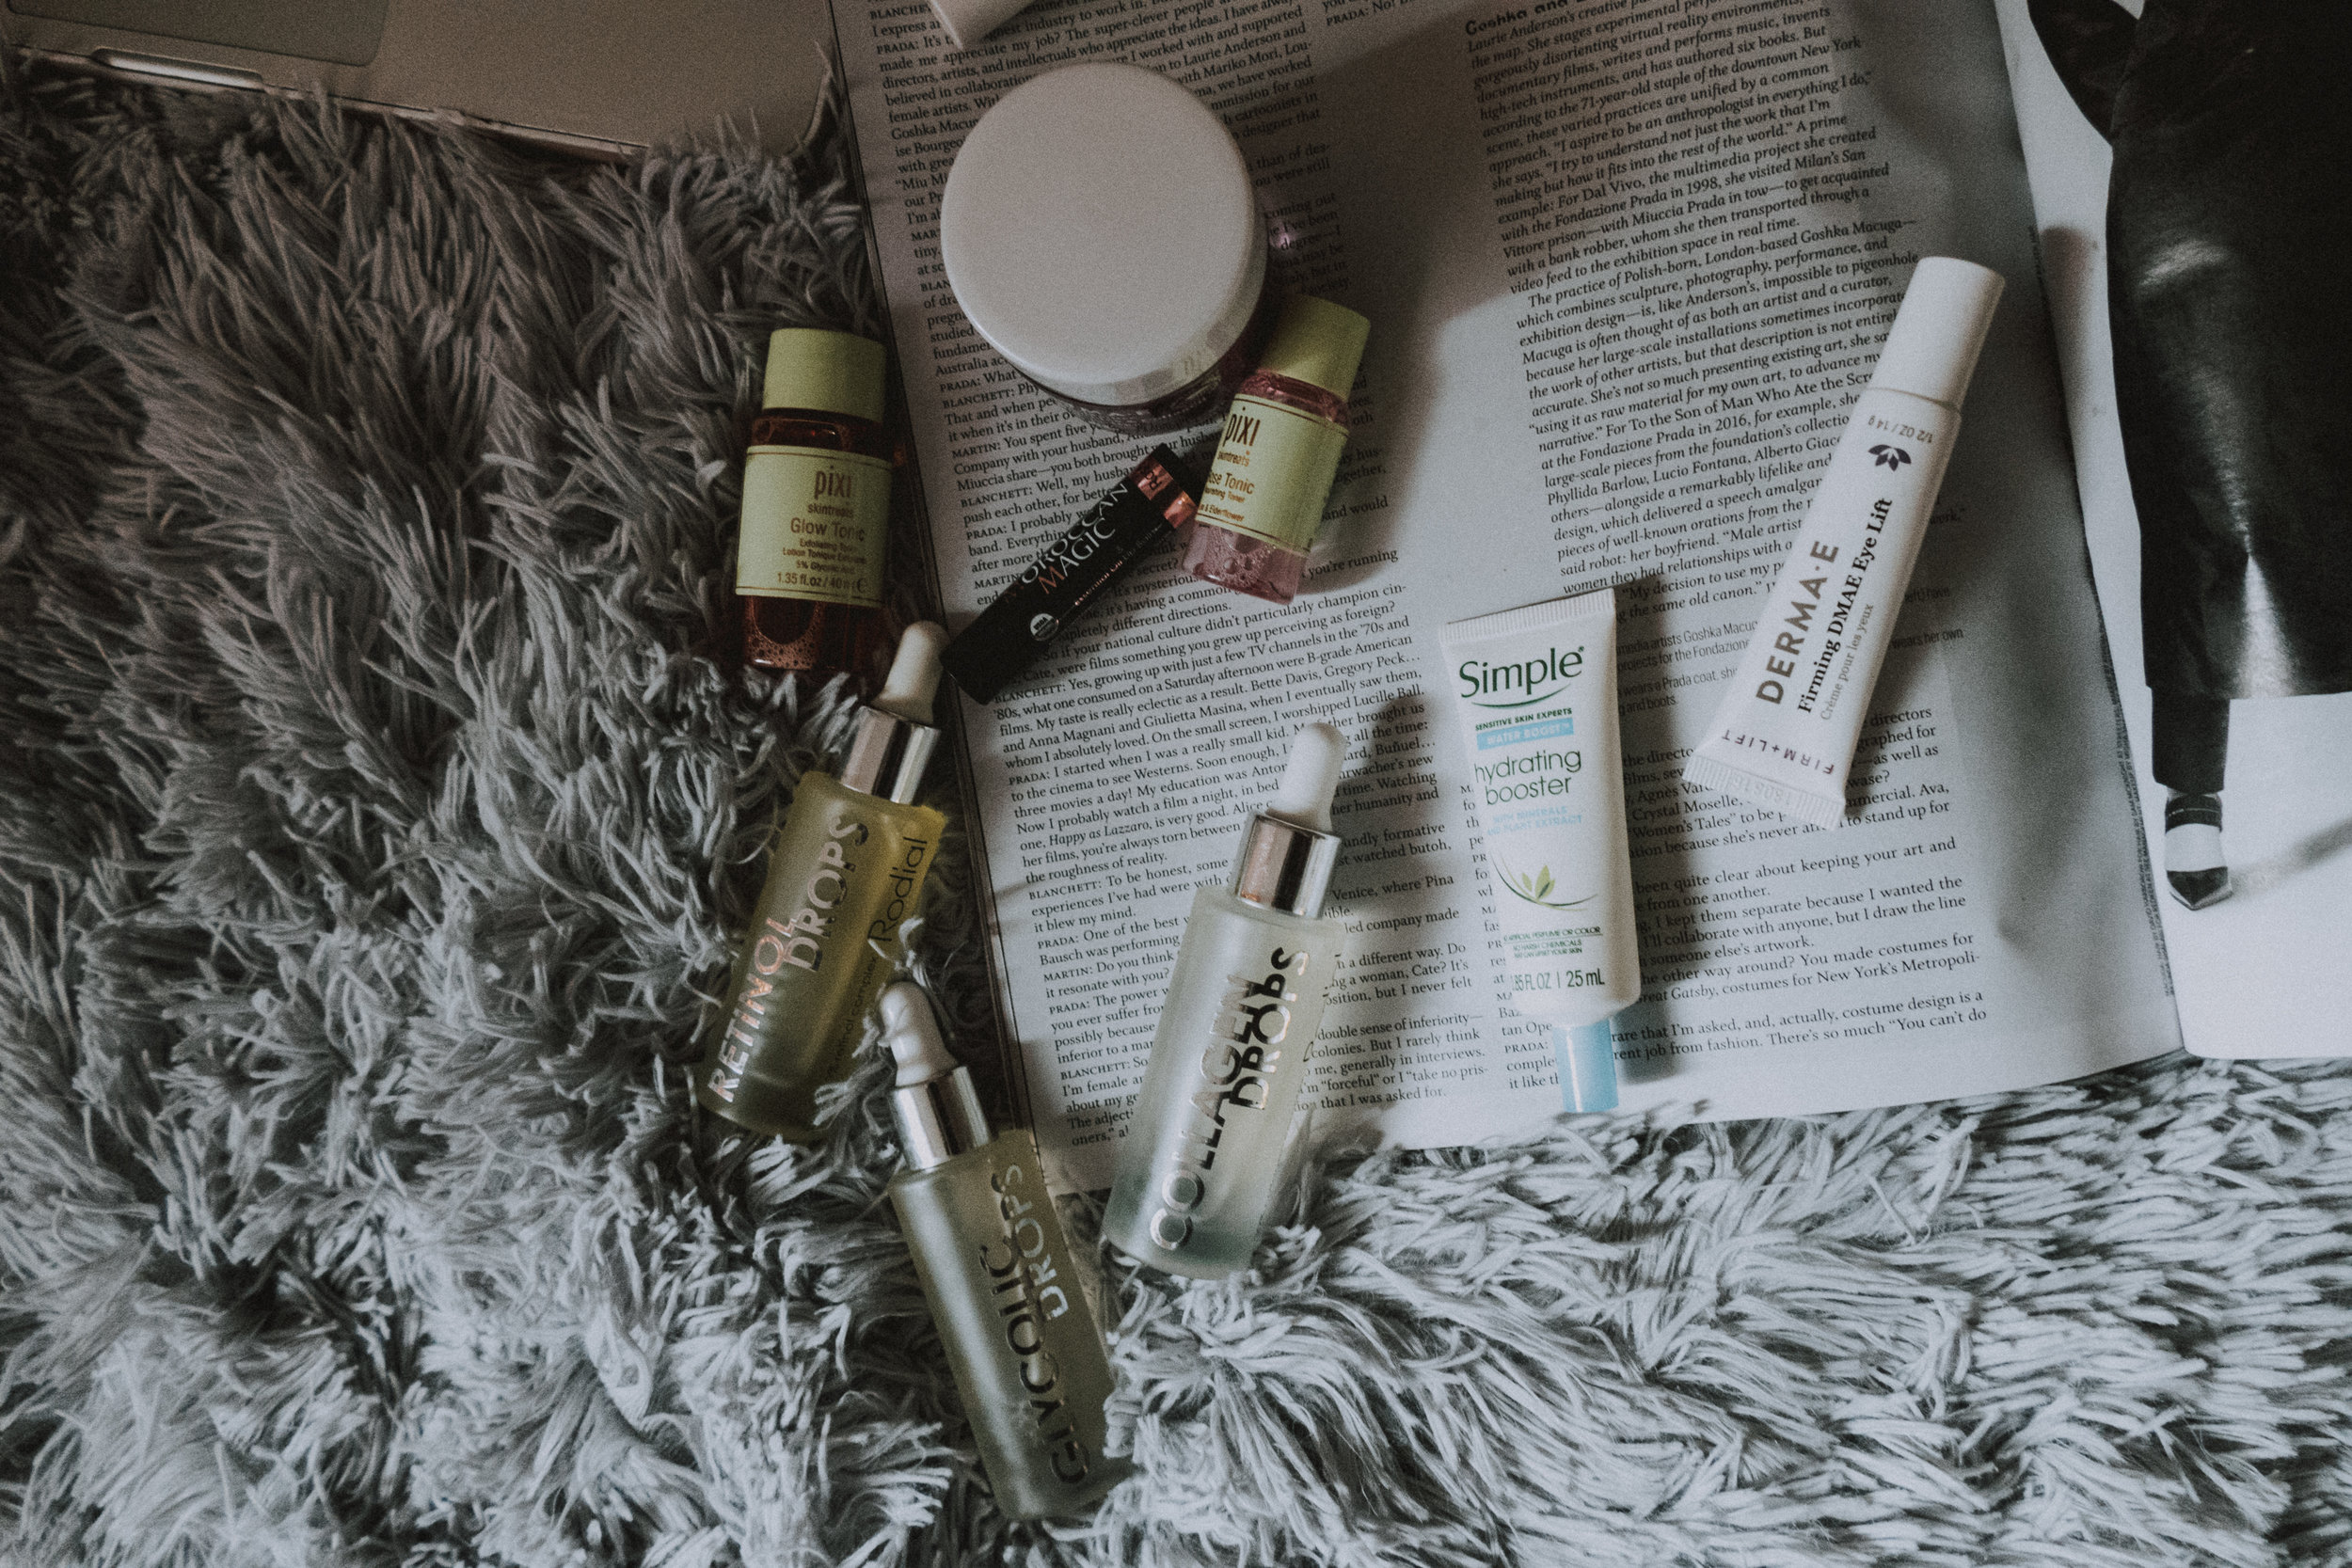 Skincare, rodial, derma e, simple, pixi beauty, moroccan magic